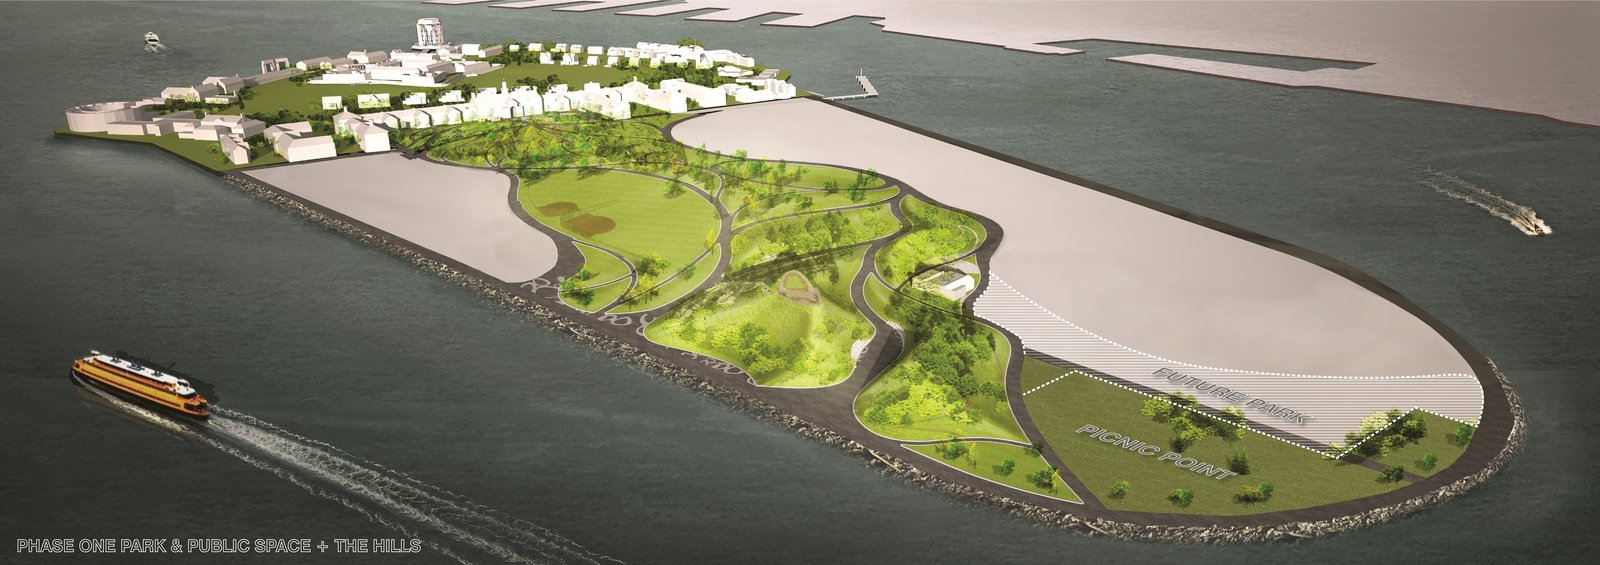 A rendering shows the 30 acres of developed areas on the island including the paths and picnic areas of Phase 1 and the 10-acre site of The Hills.  Photo 6 of 6 in New York's Newest Park Sits on Recycled Demolition Debris